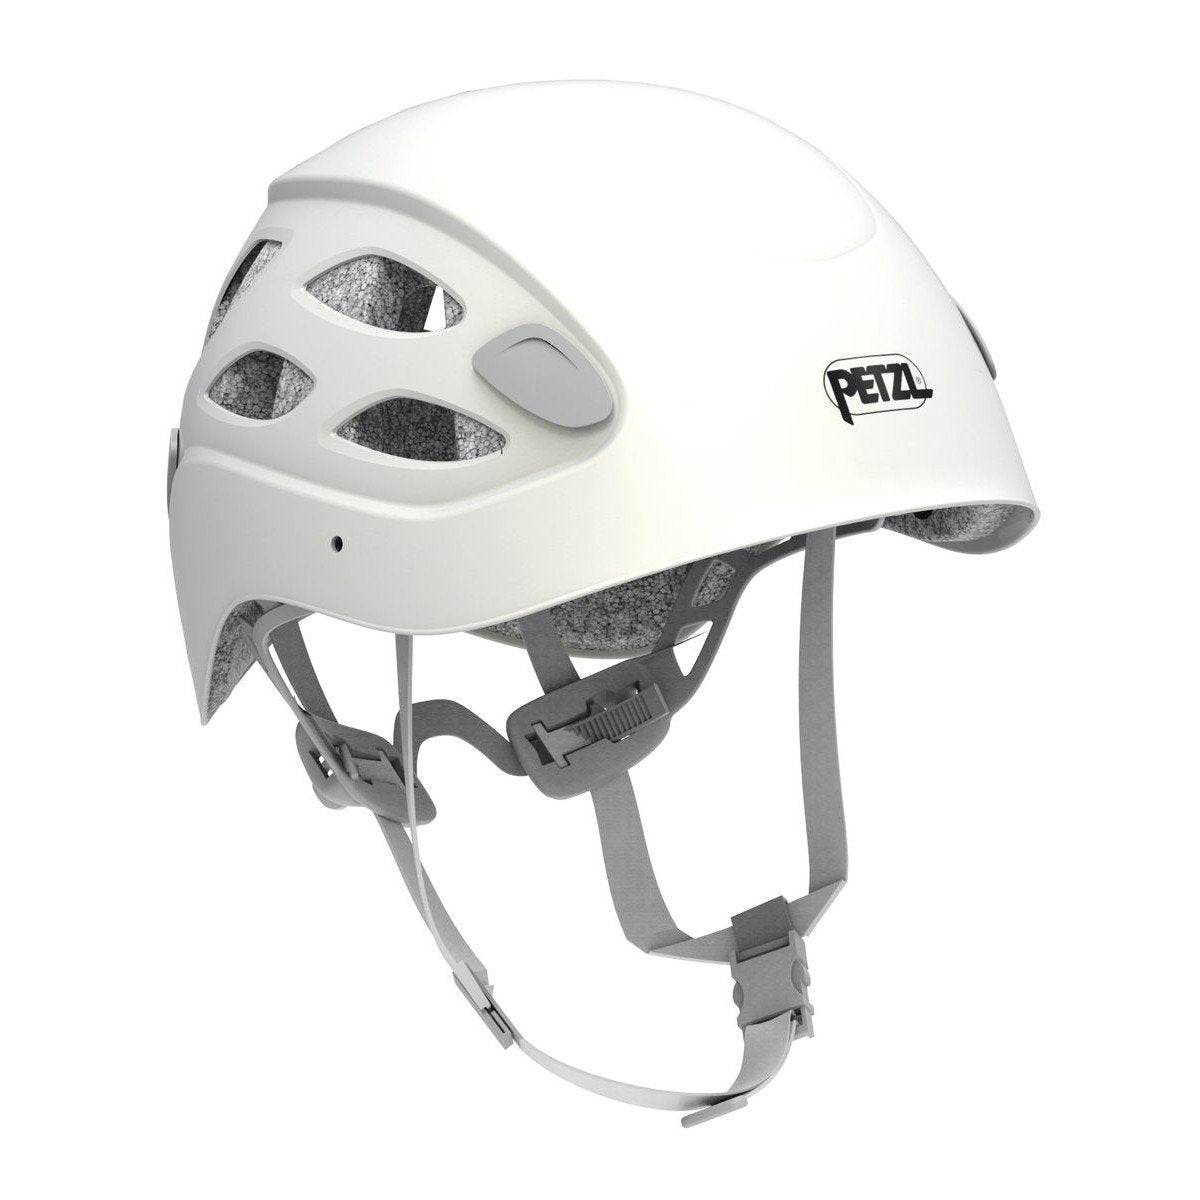 Petzl Borea multi-sport helmet, front/side view in white colour